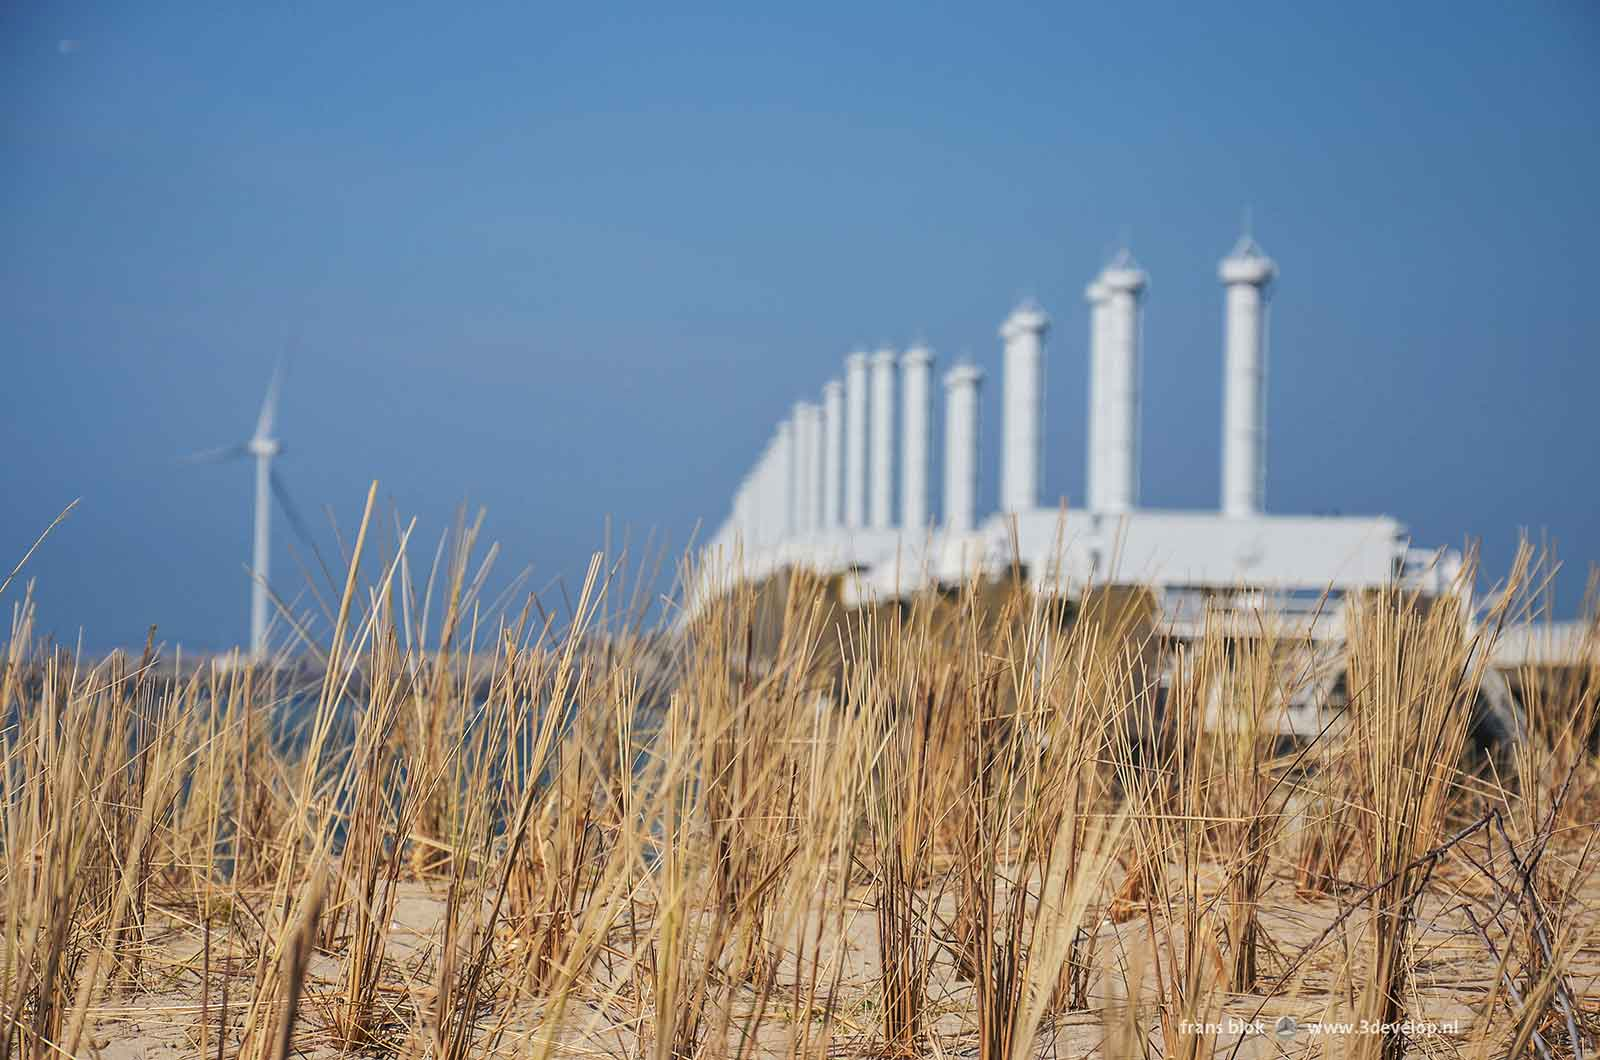 Beachgrass on the artificial island Neeltje Jans with in the background a wind turbine and the Eastern Scheldt barrier.